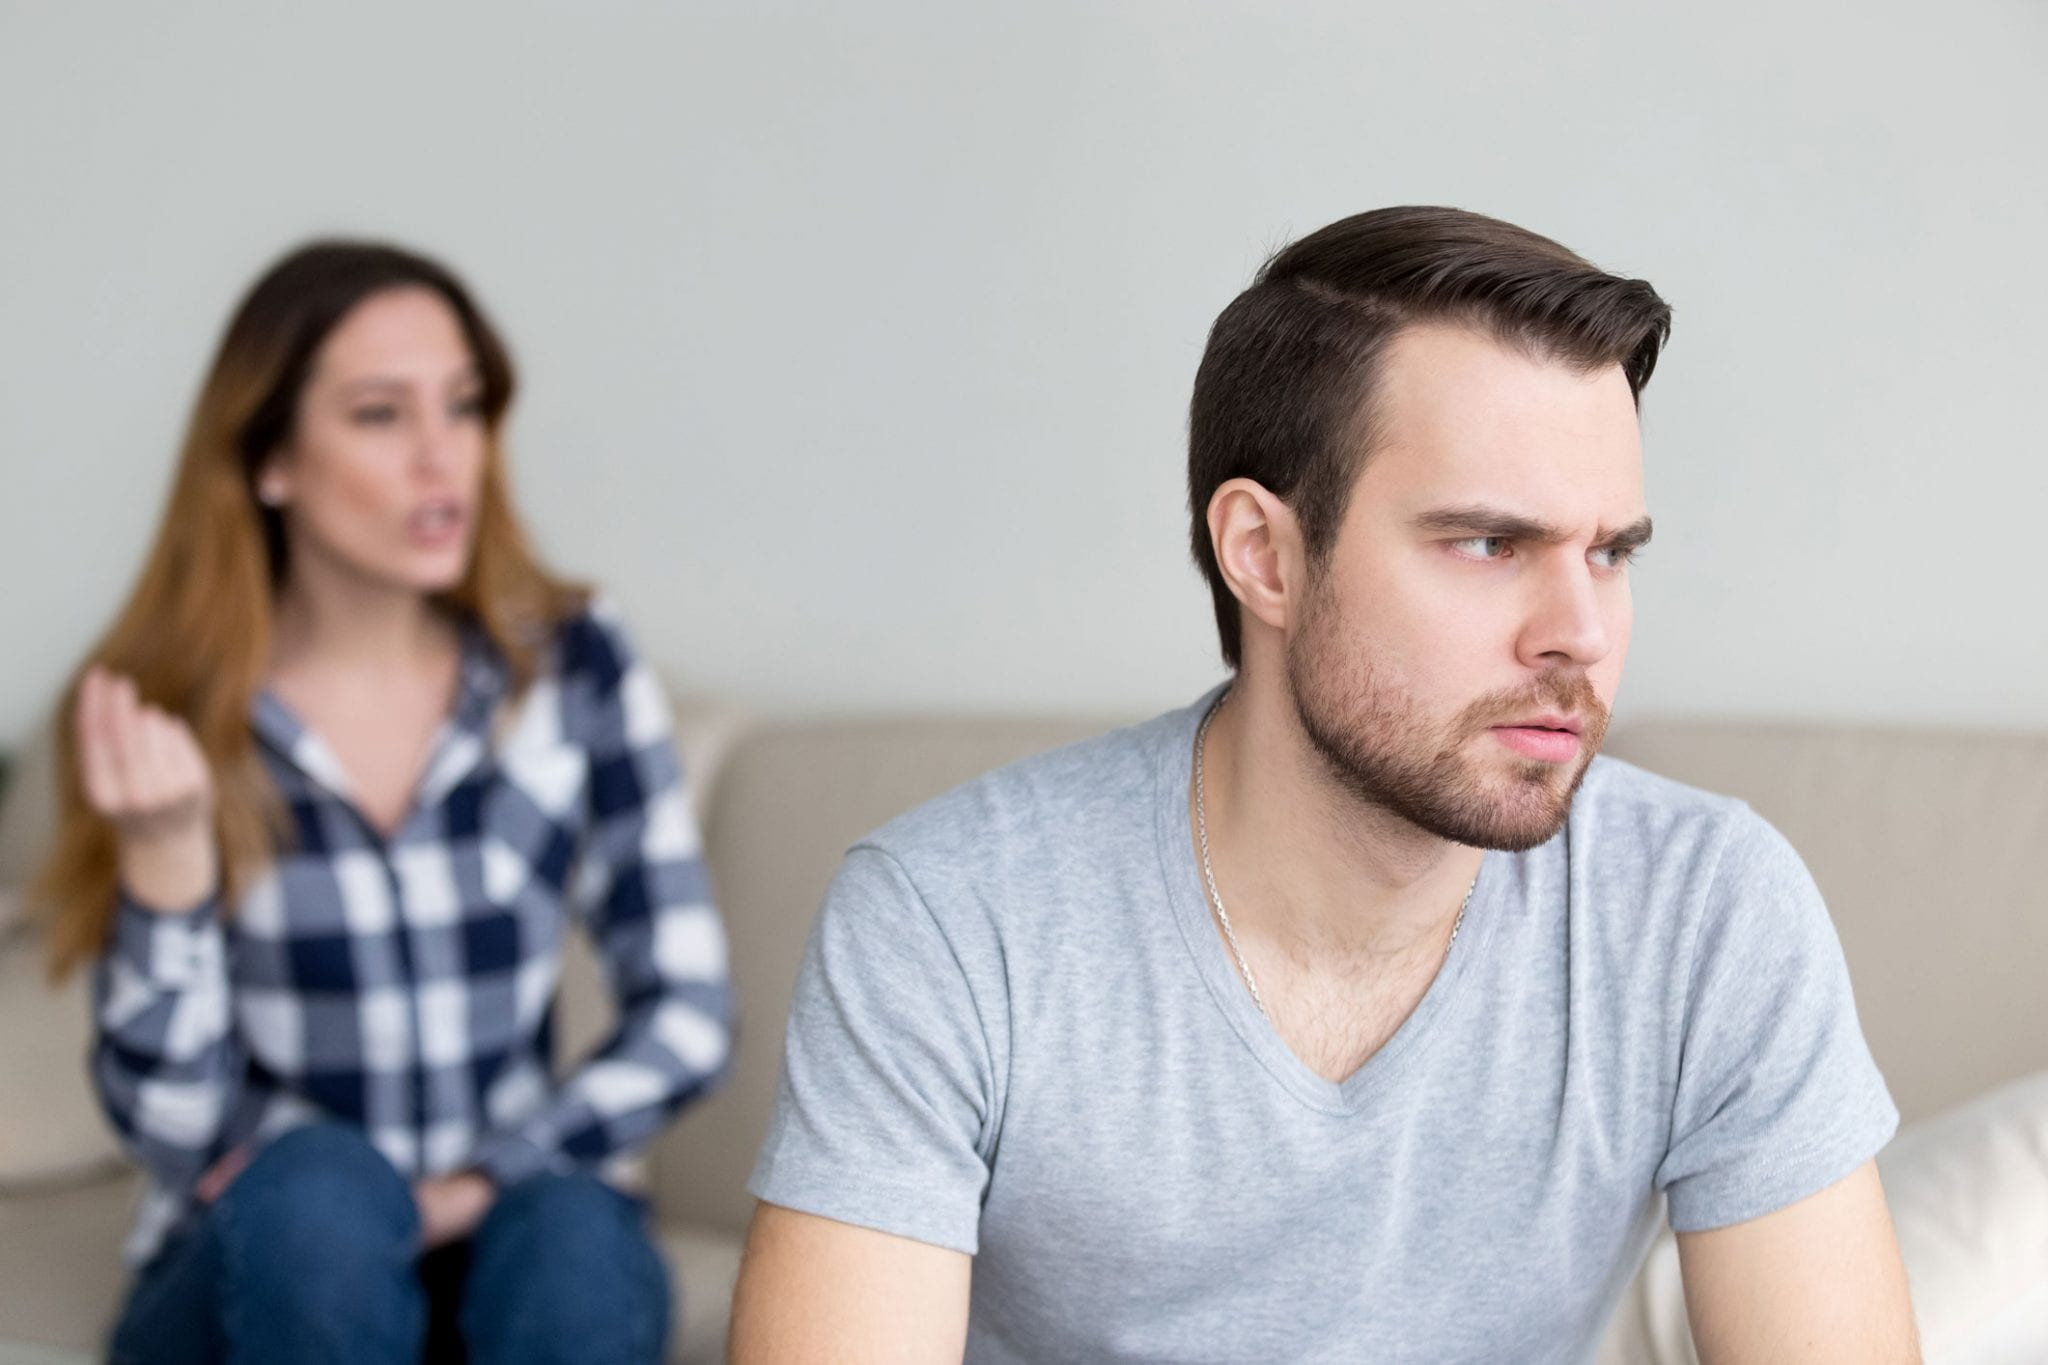 Is Depression the Same in Men and Women